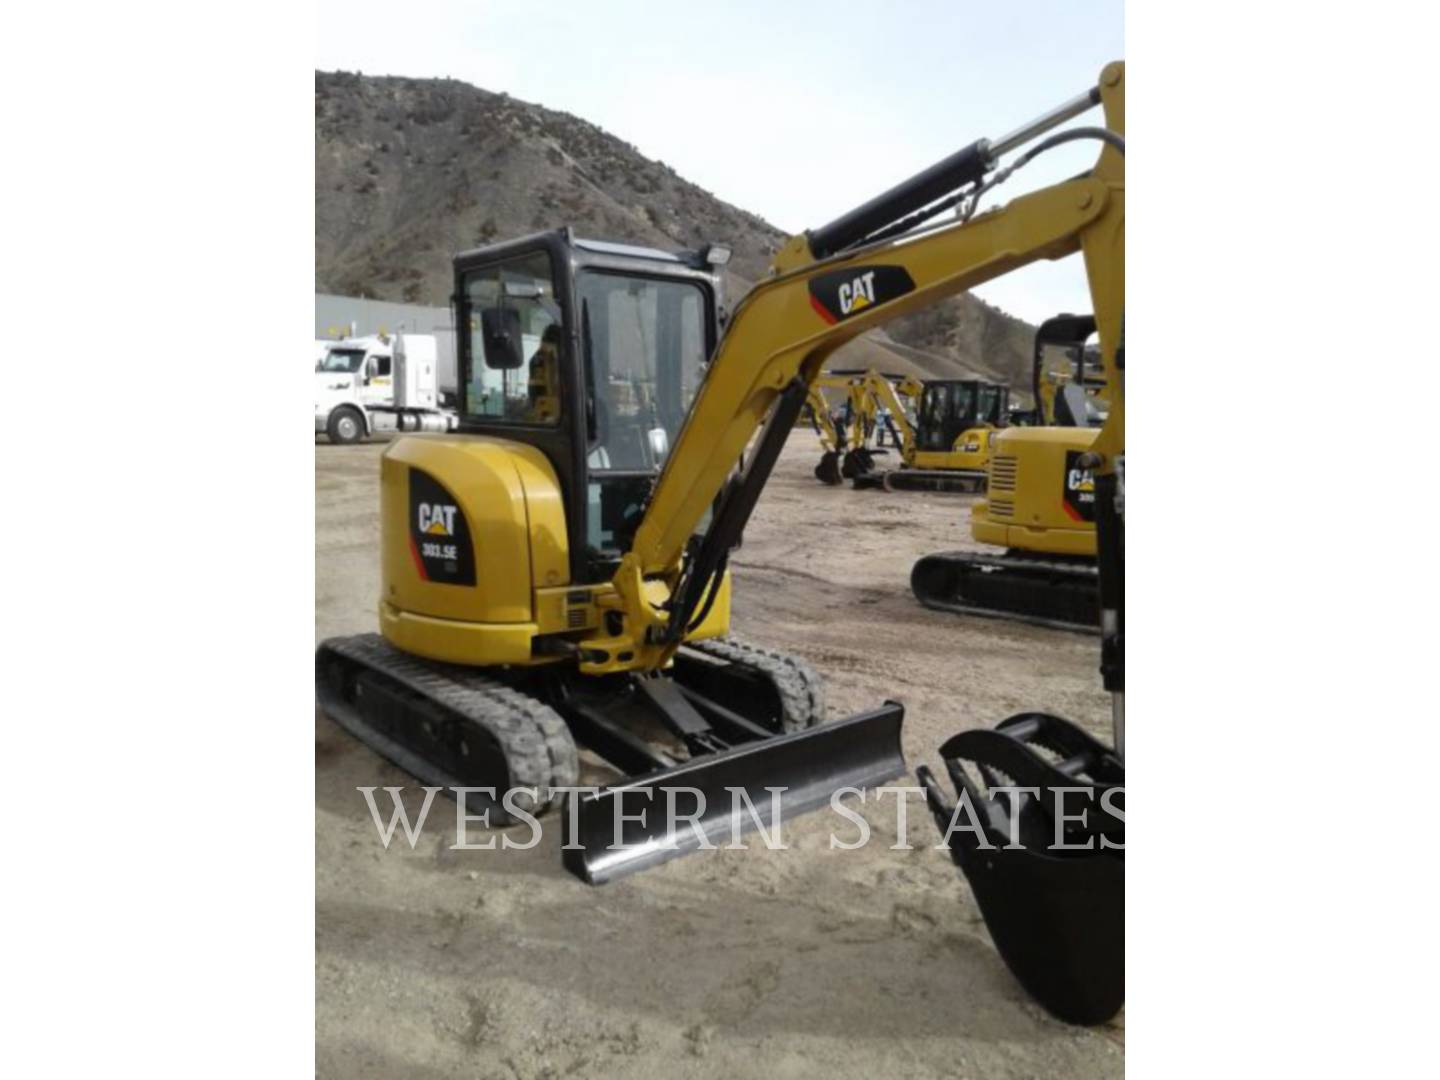 2015 CATERPILLAR 303.5ECR image1